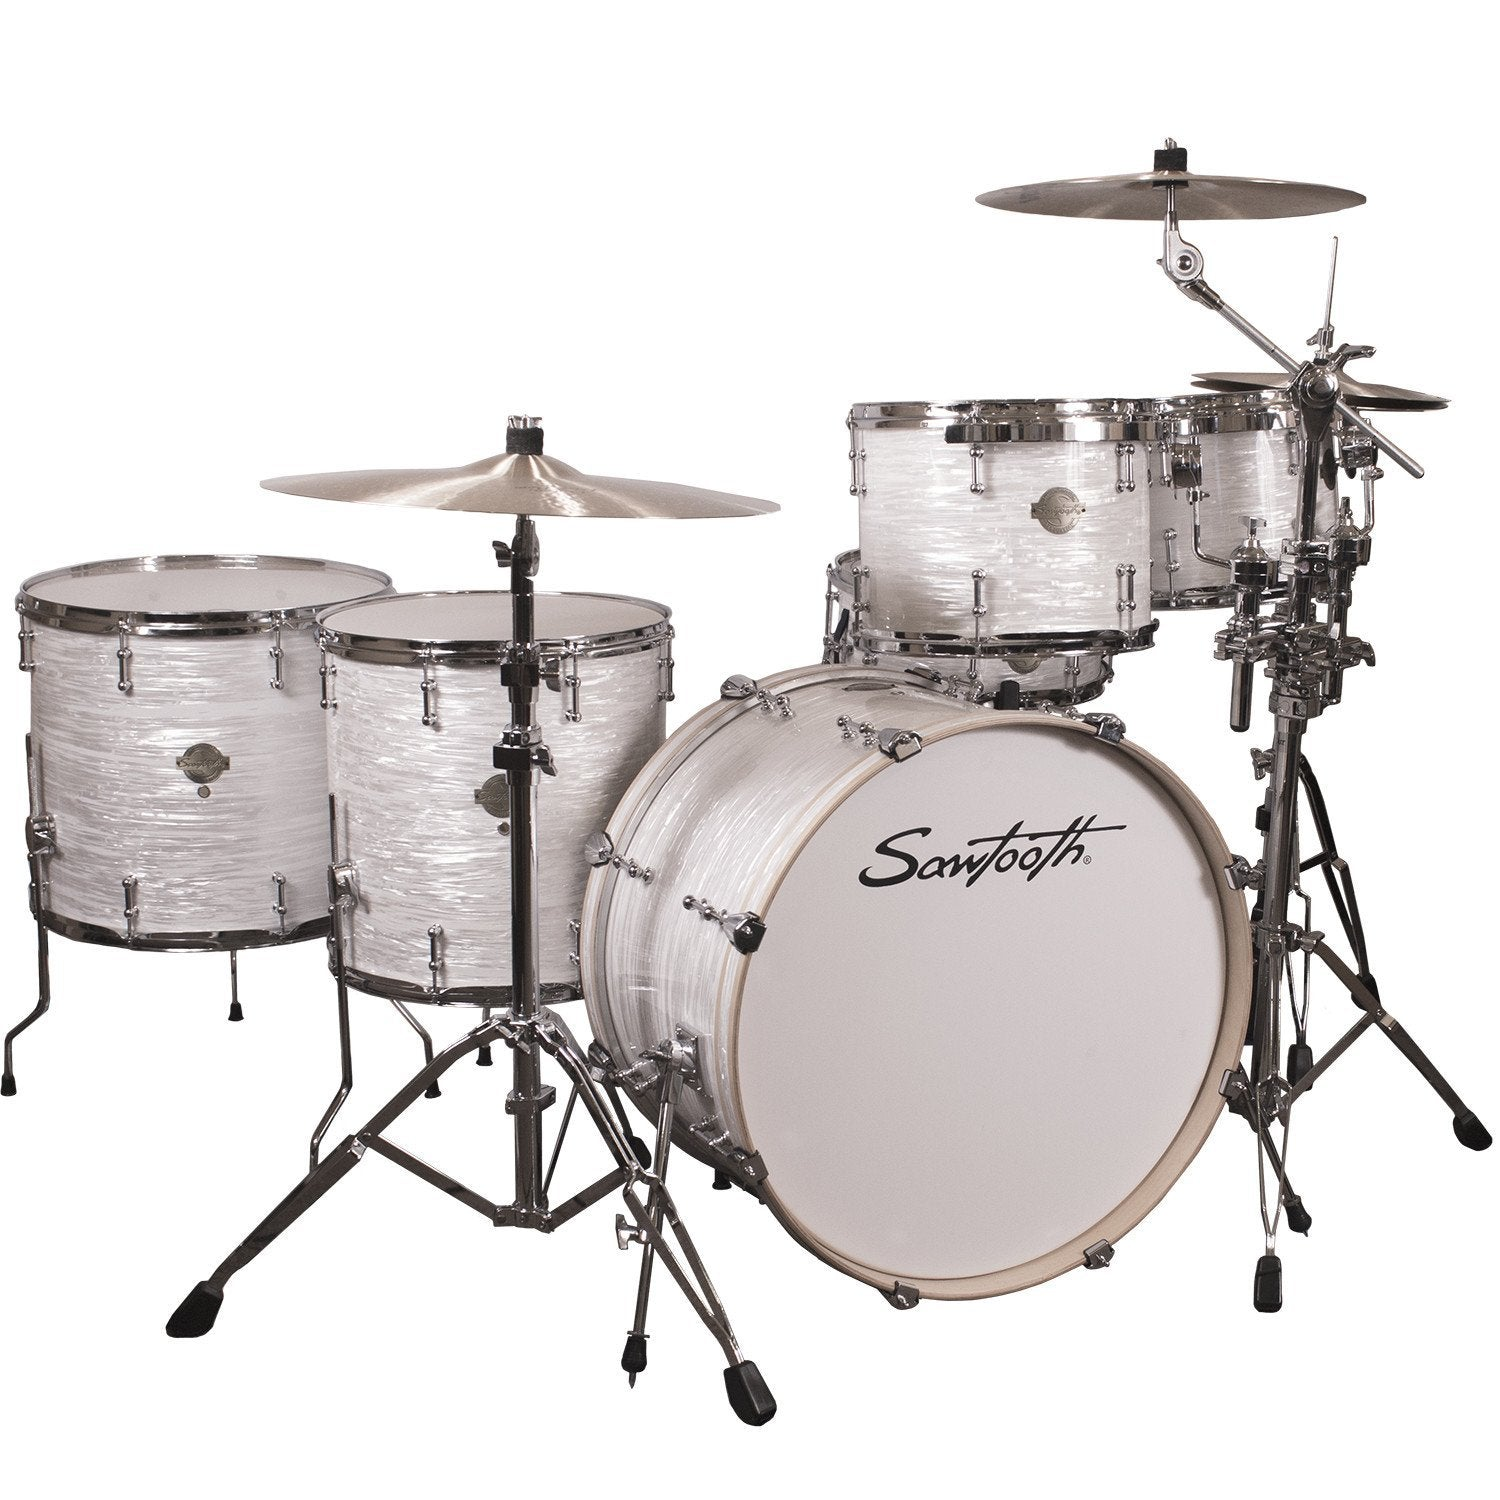 ChromaCast Hardware Sawtooth Command Series 6 Piece Drum Set With 24 Bass